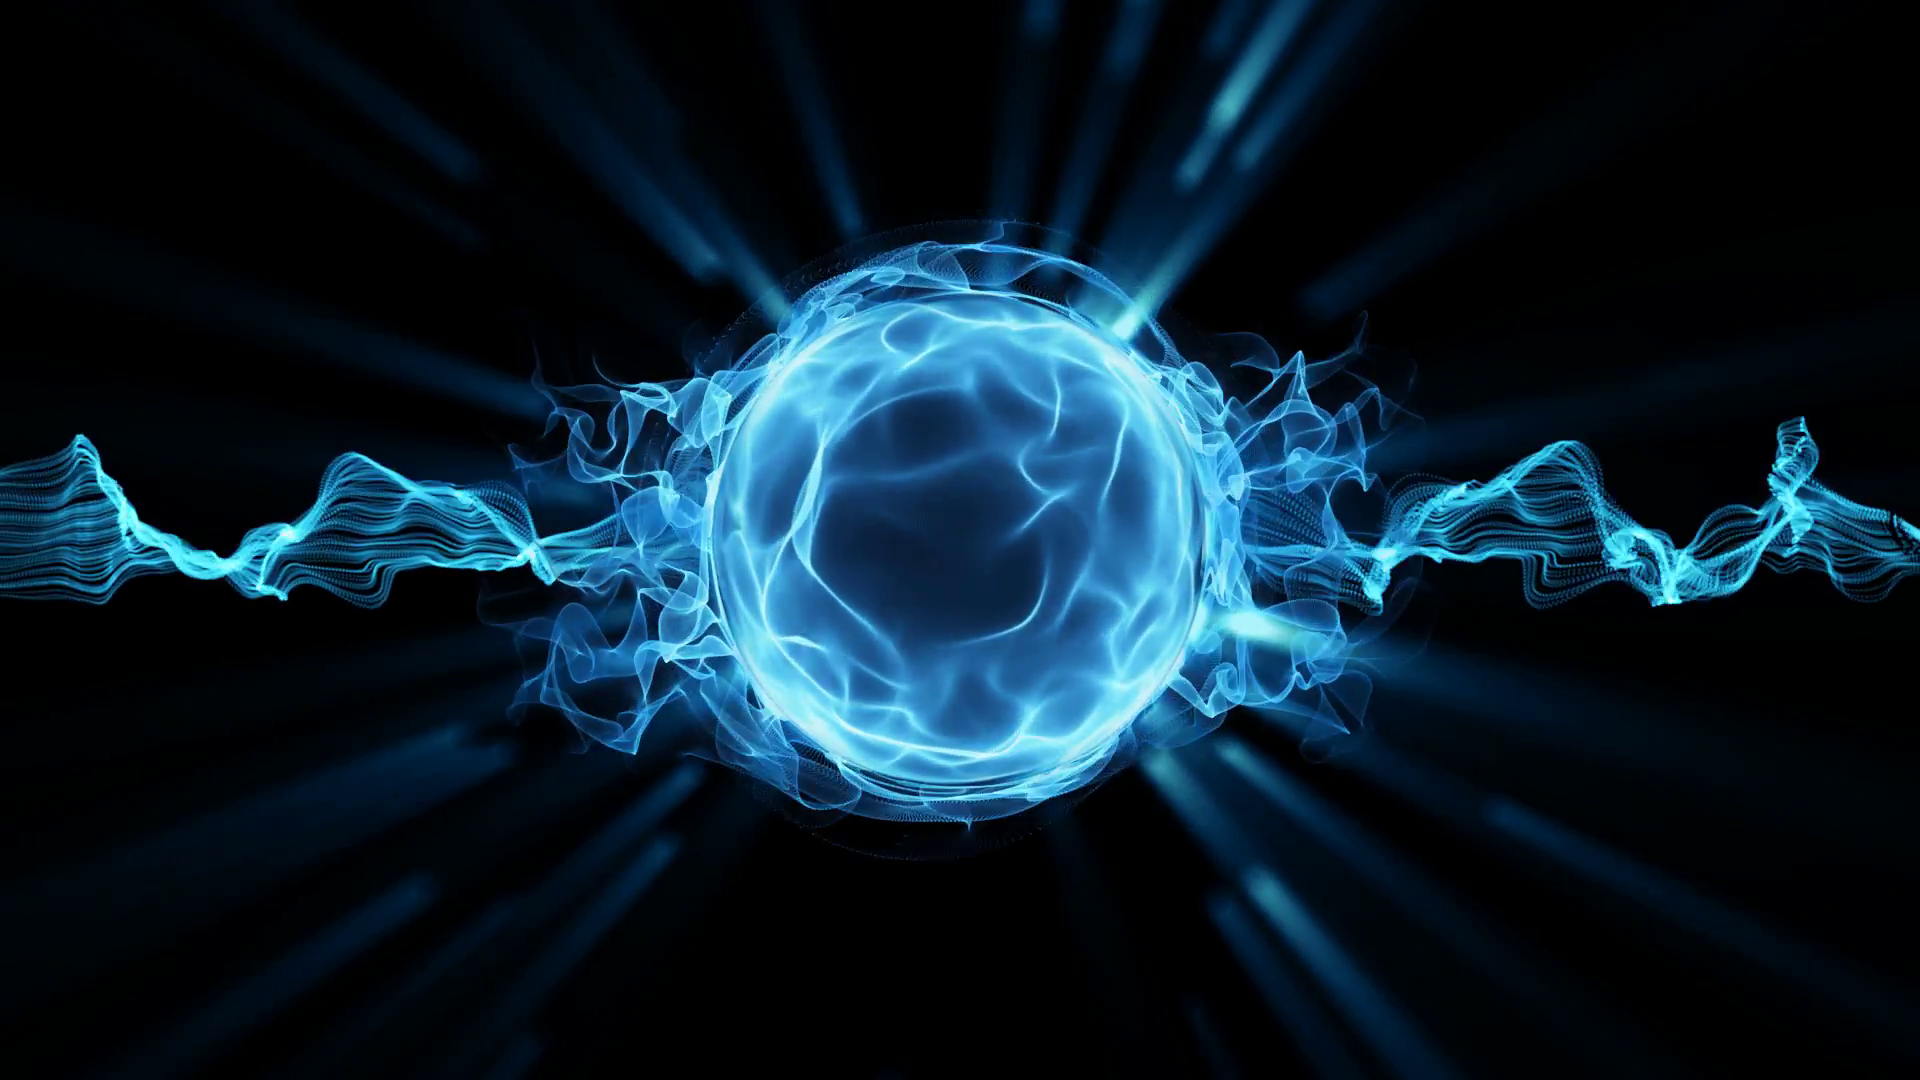 Plasma Magic Ball Looped Animation Motion Background Videoblocks Animation Background Spiritual Images Background For Photography